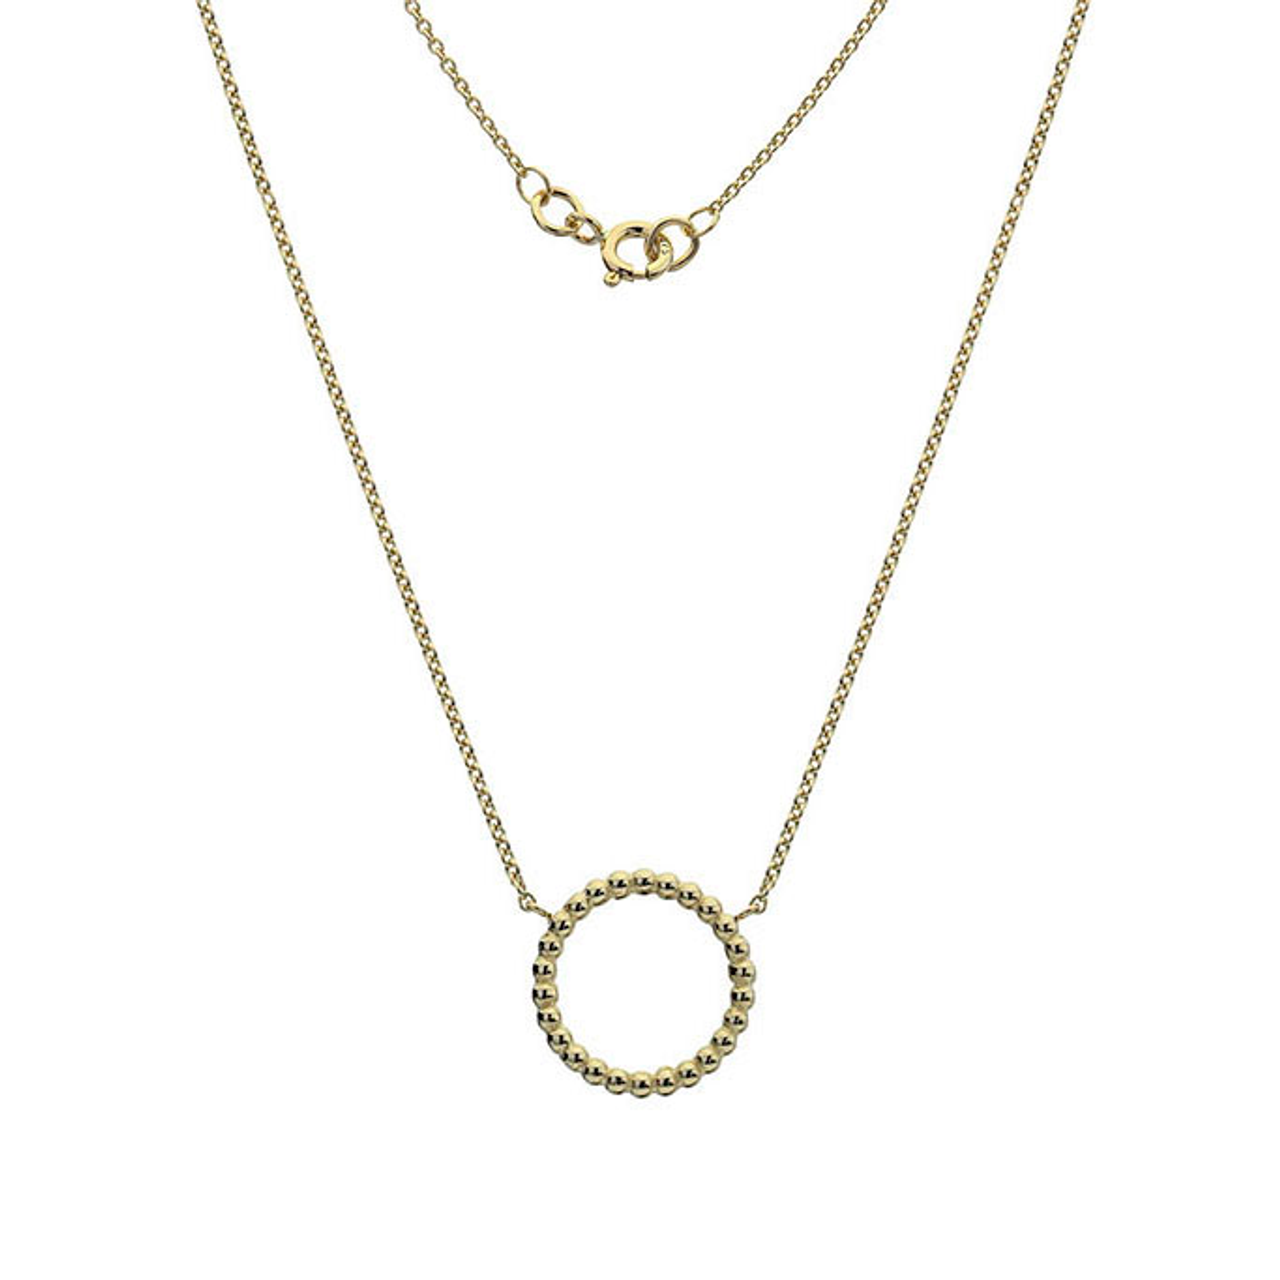 9ct Yellow Gold beaded circle Pendant on Chain.